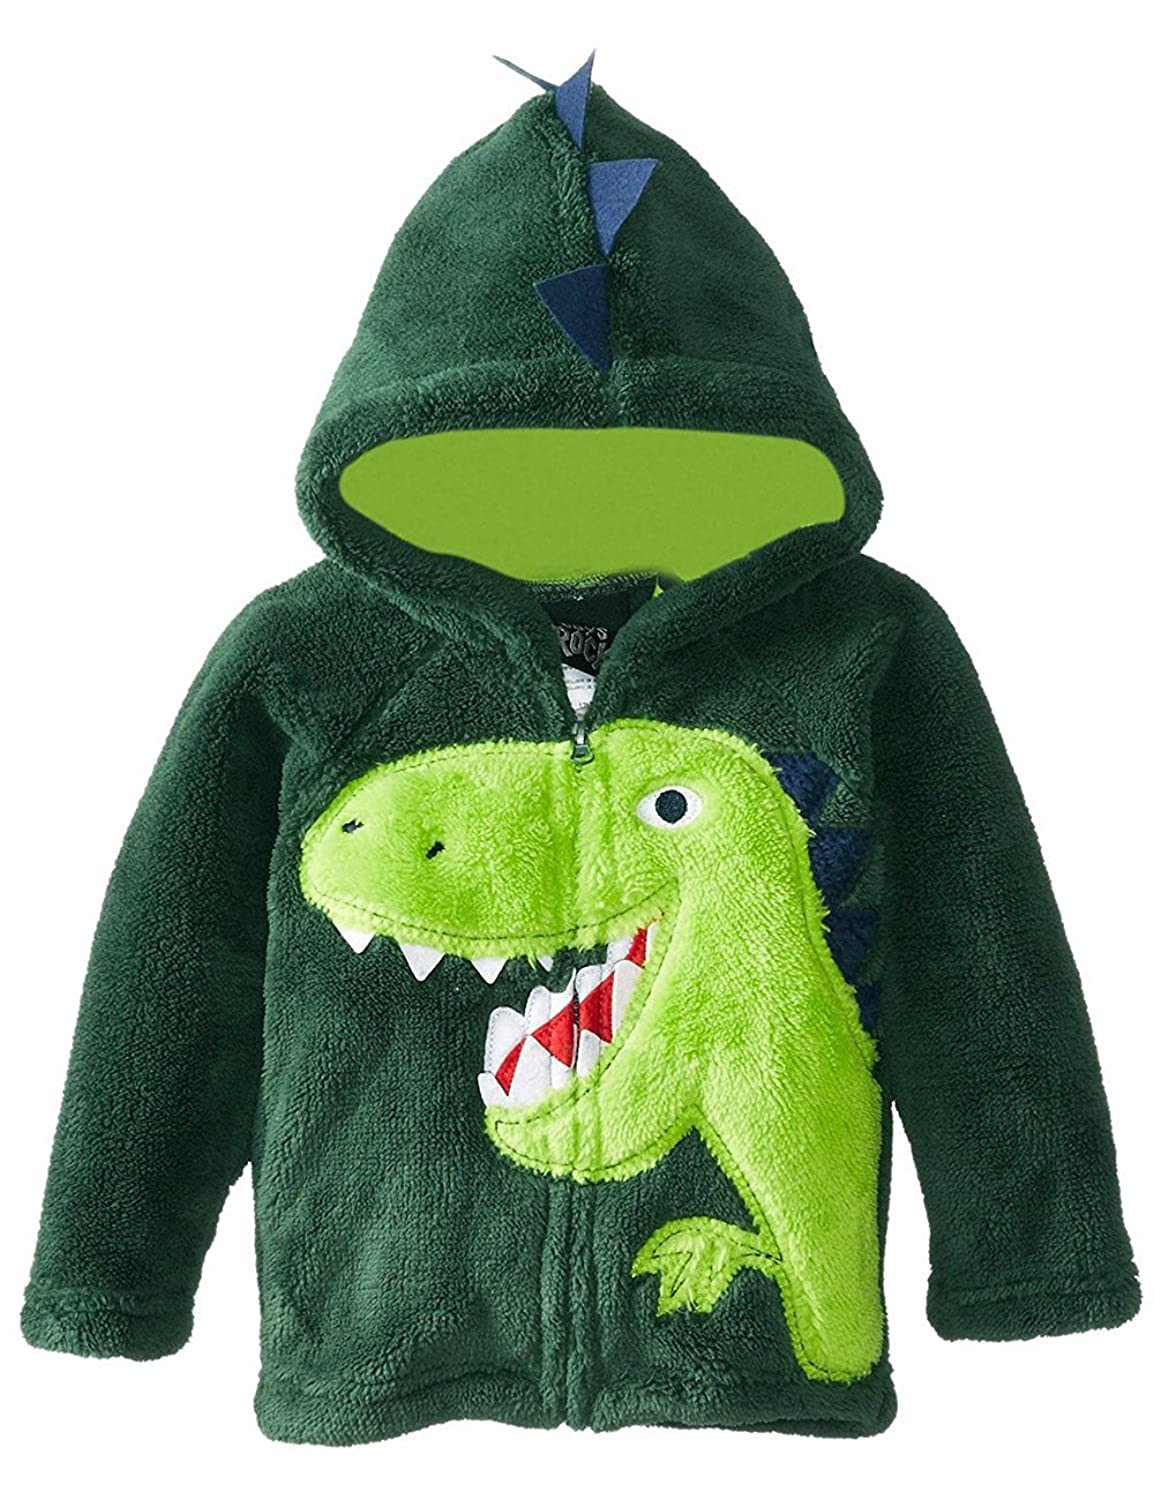 FANTASIEN Little Boys Winter Coral Fleece Dinosaur Zipper Hoodies Jacket Outerwear Windbreaker Coat for 1-6T Boy